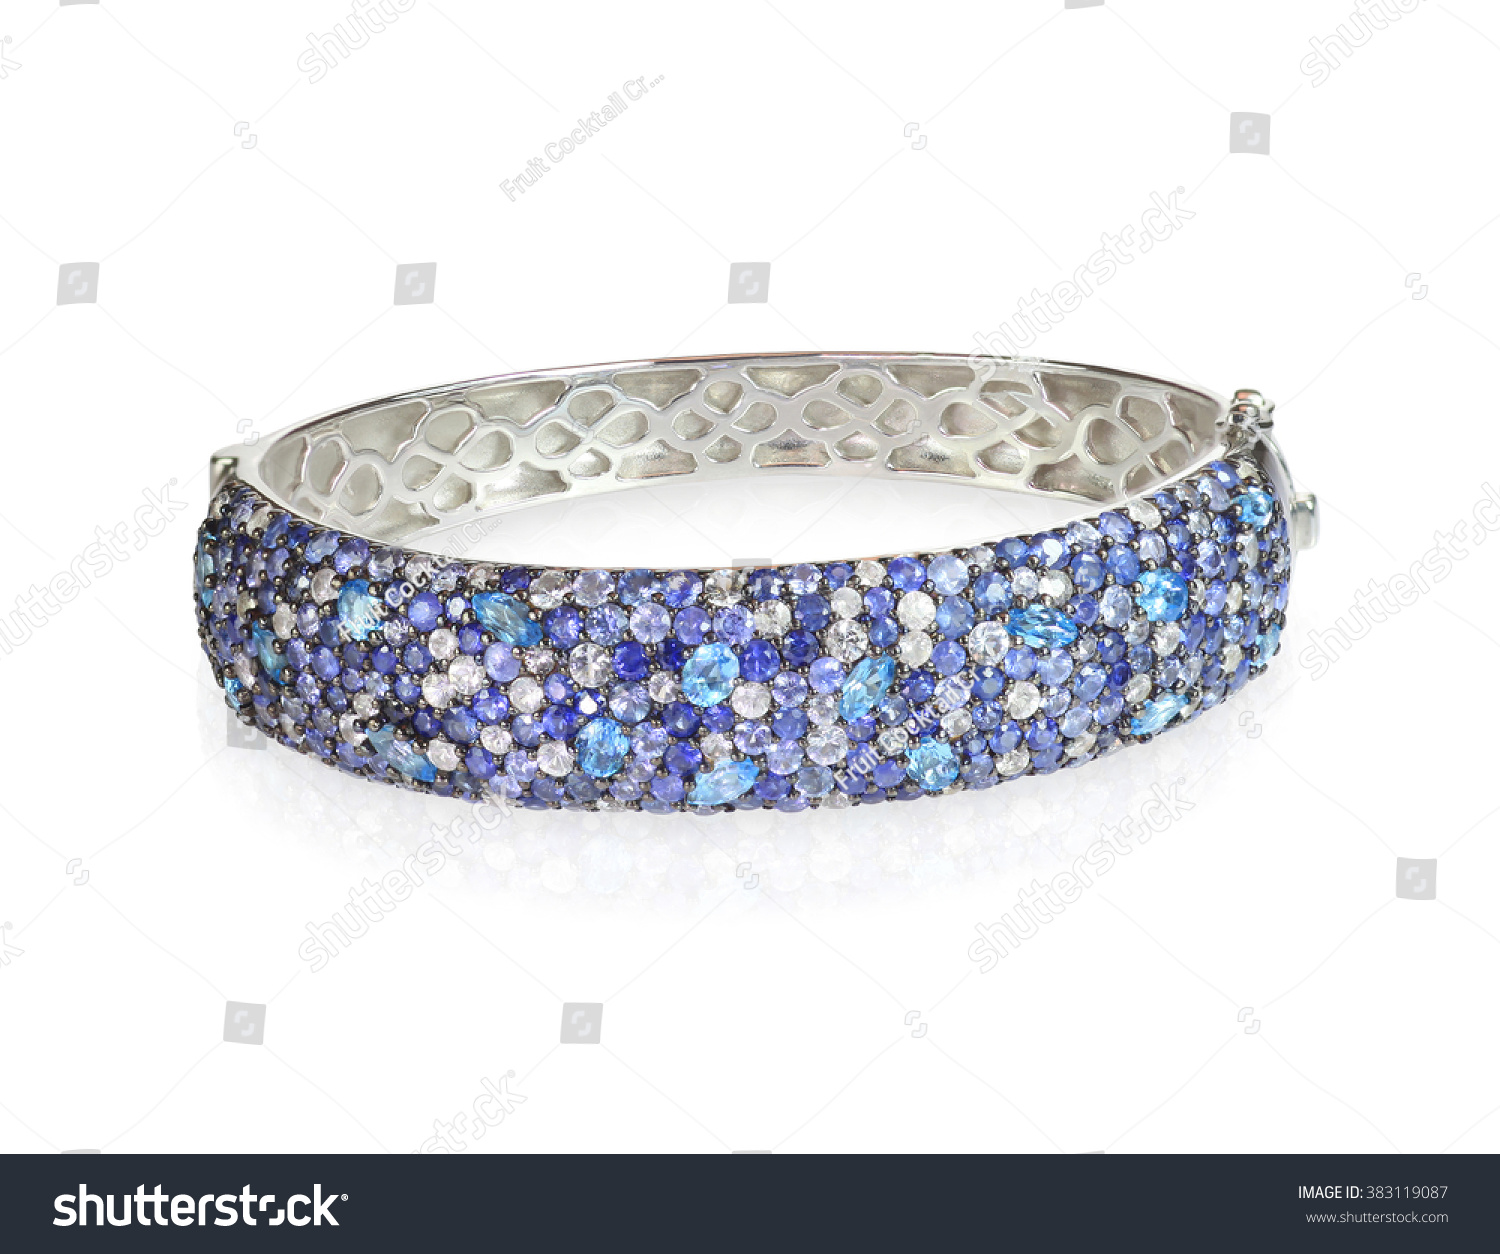 diamond bangle ladies blue next gold white bangles sapphire diamonds previous tennis and bracelet